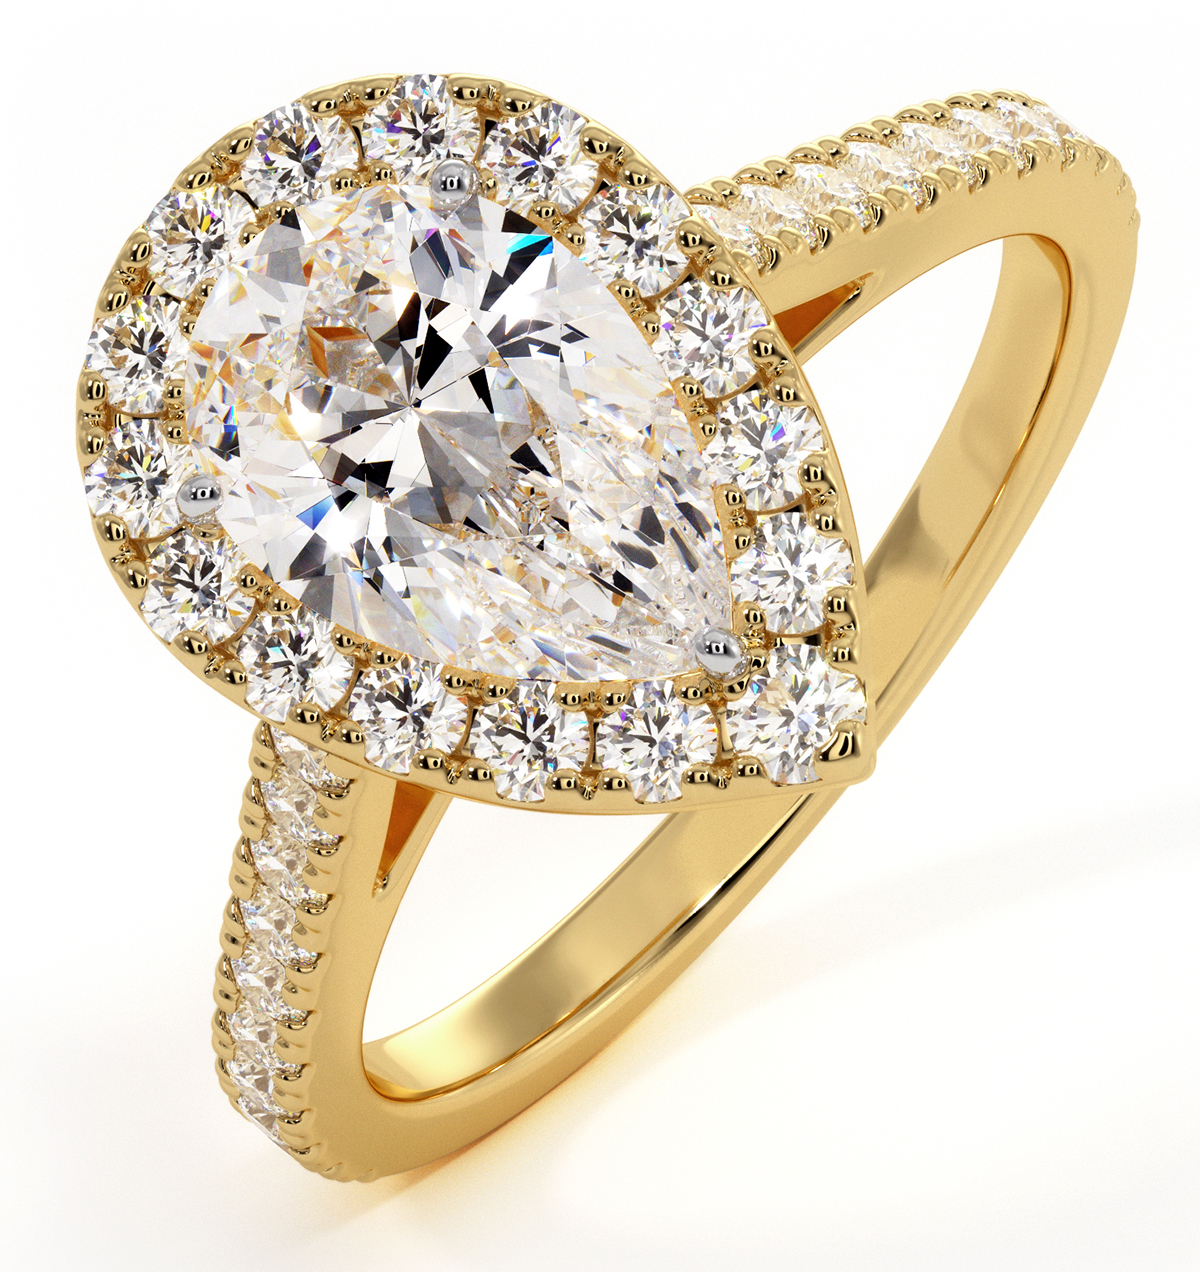 Diana GIA Diamond Pear Halo Engagement Ring in 18K Gold 1.60ct G/SI2 - image 1